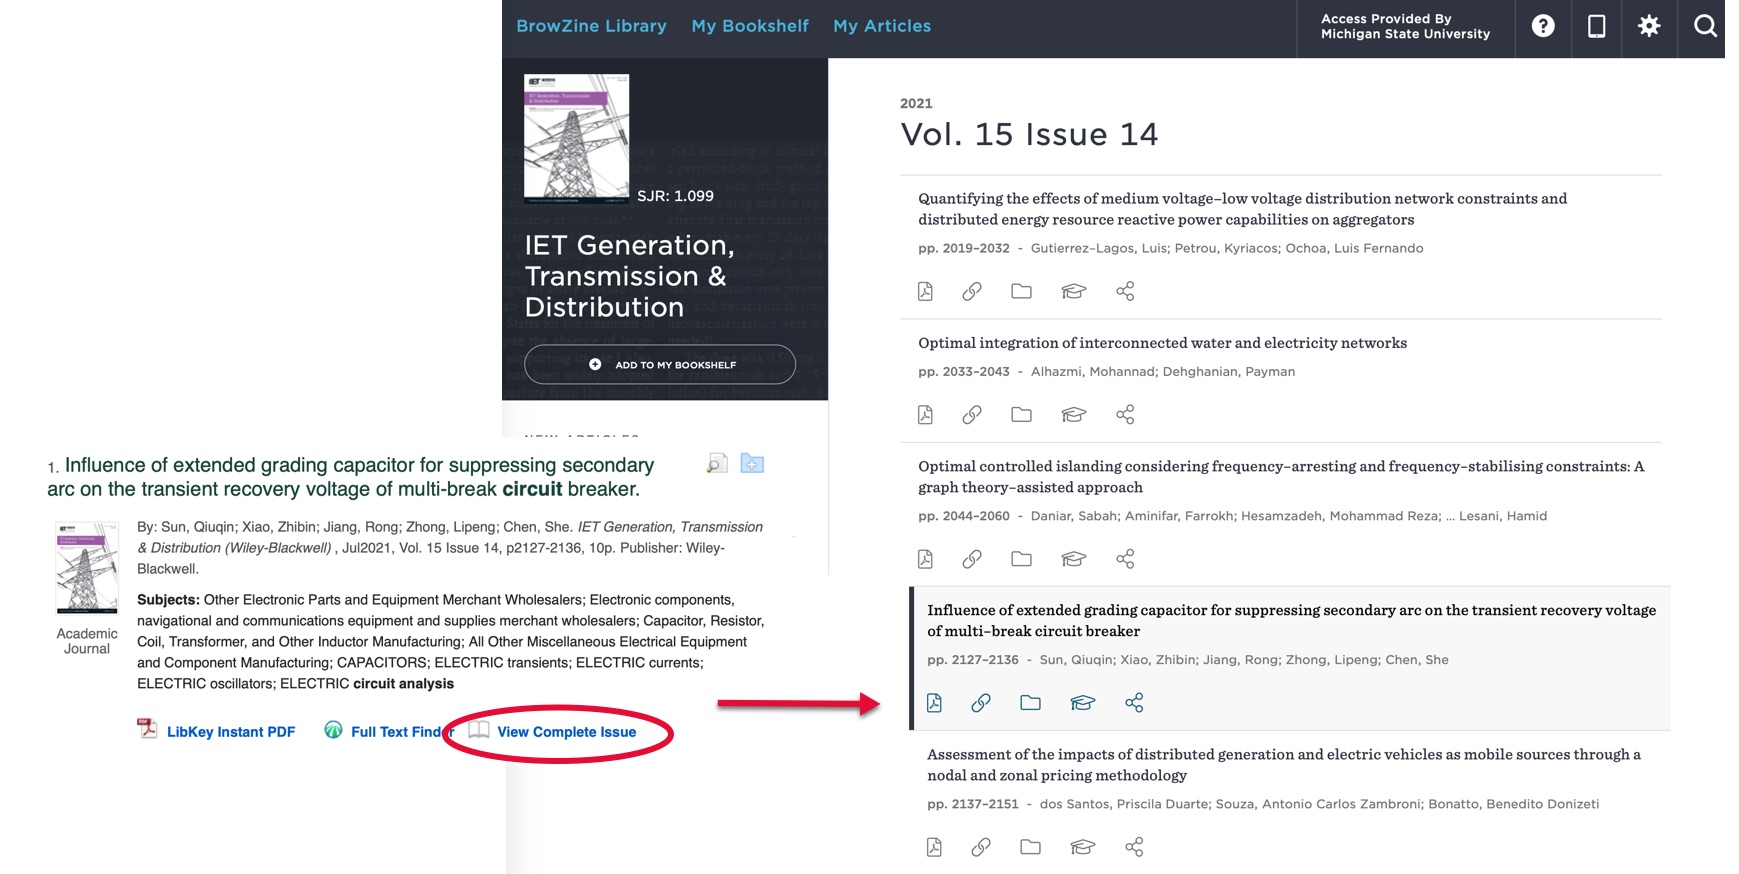 Example of using LibKey Discovery to connect to the complete issue of a journal.